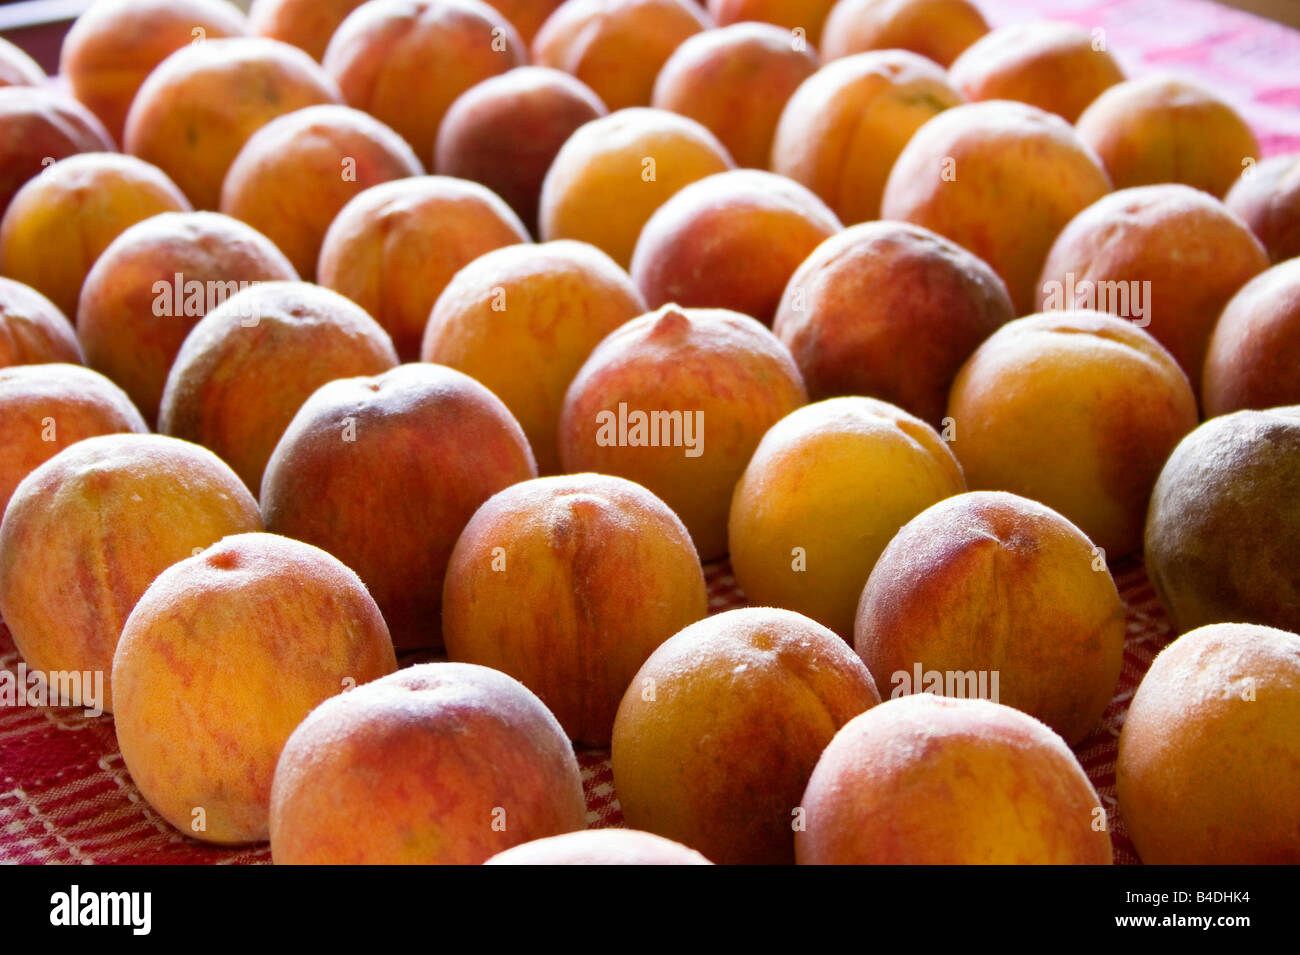 Peaches laid out on a table cloth to ripen - Stock Image